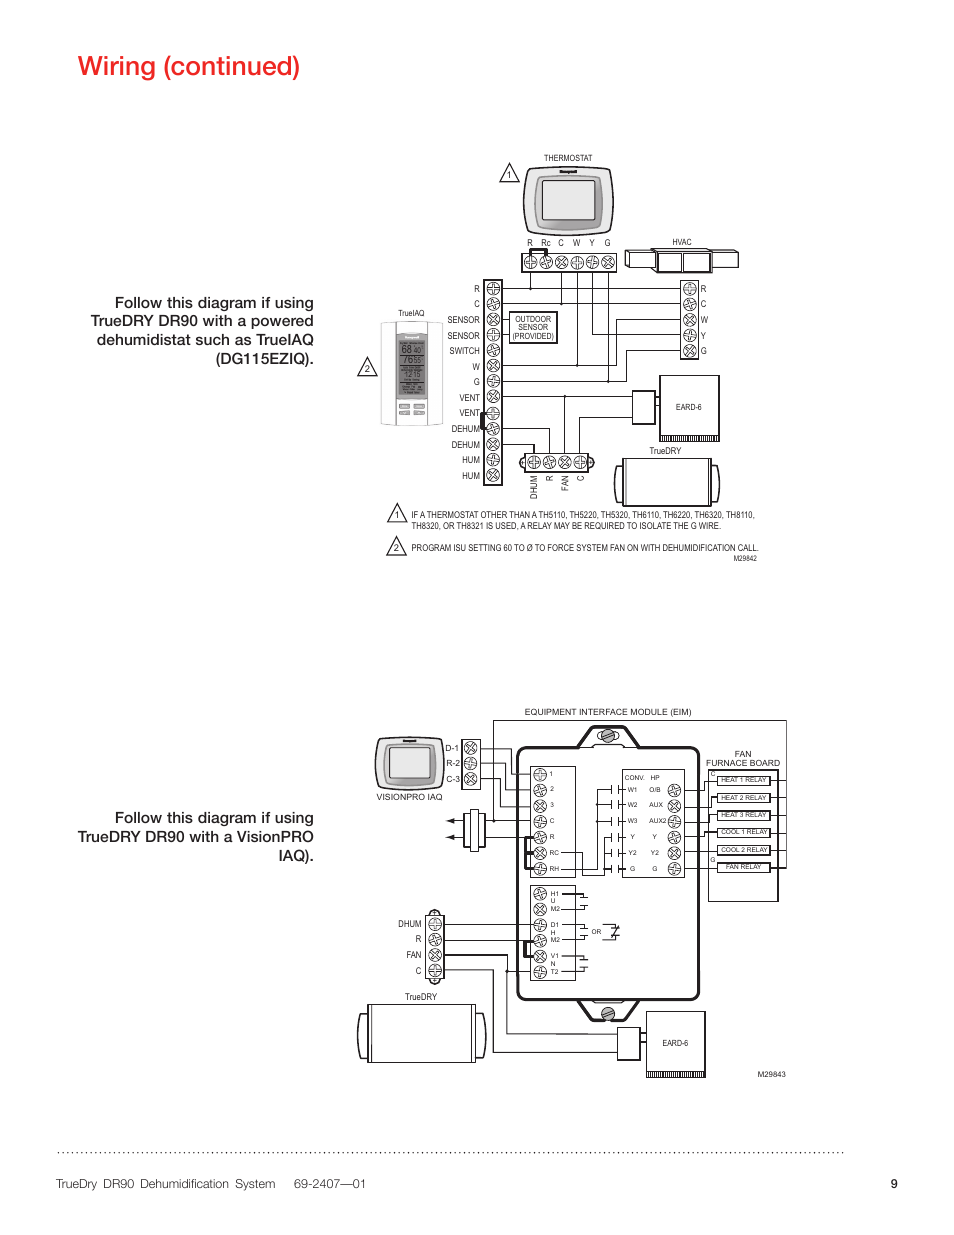 Paragon Time Clock Manualwiring Diagram For 8145 20 Rotax 912 Wiring Schematic Dehumidifier Uls Engine